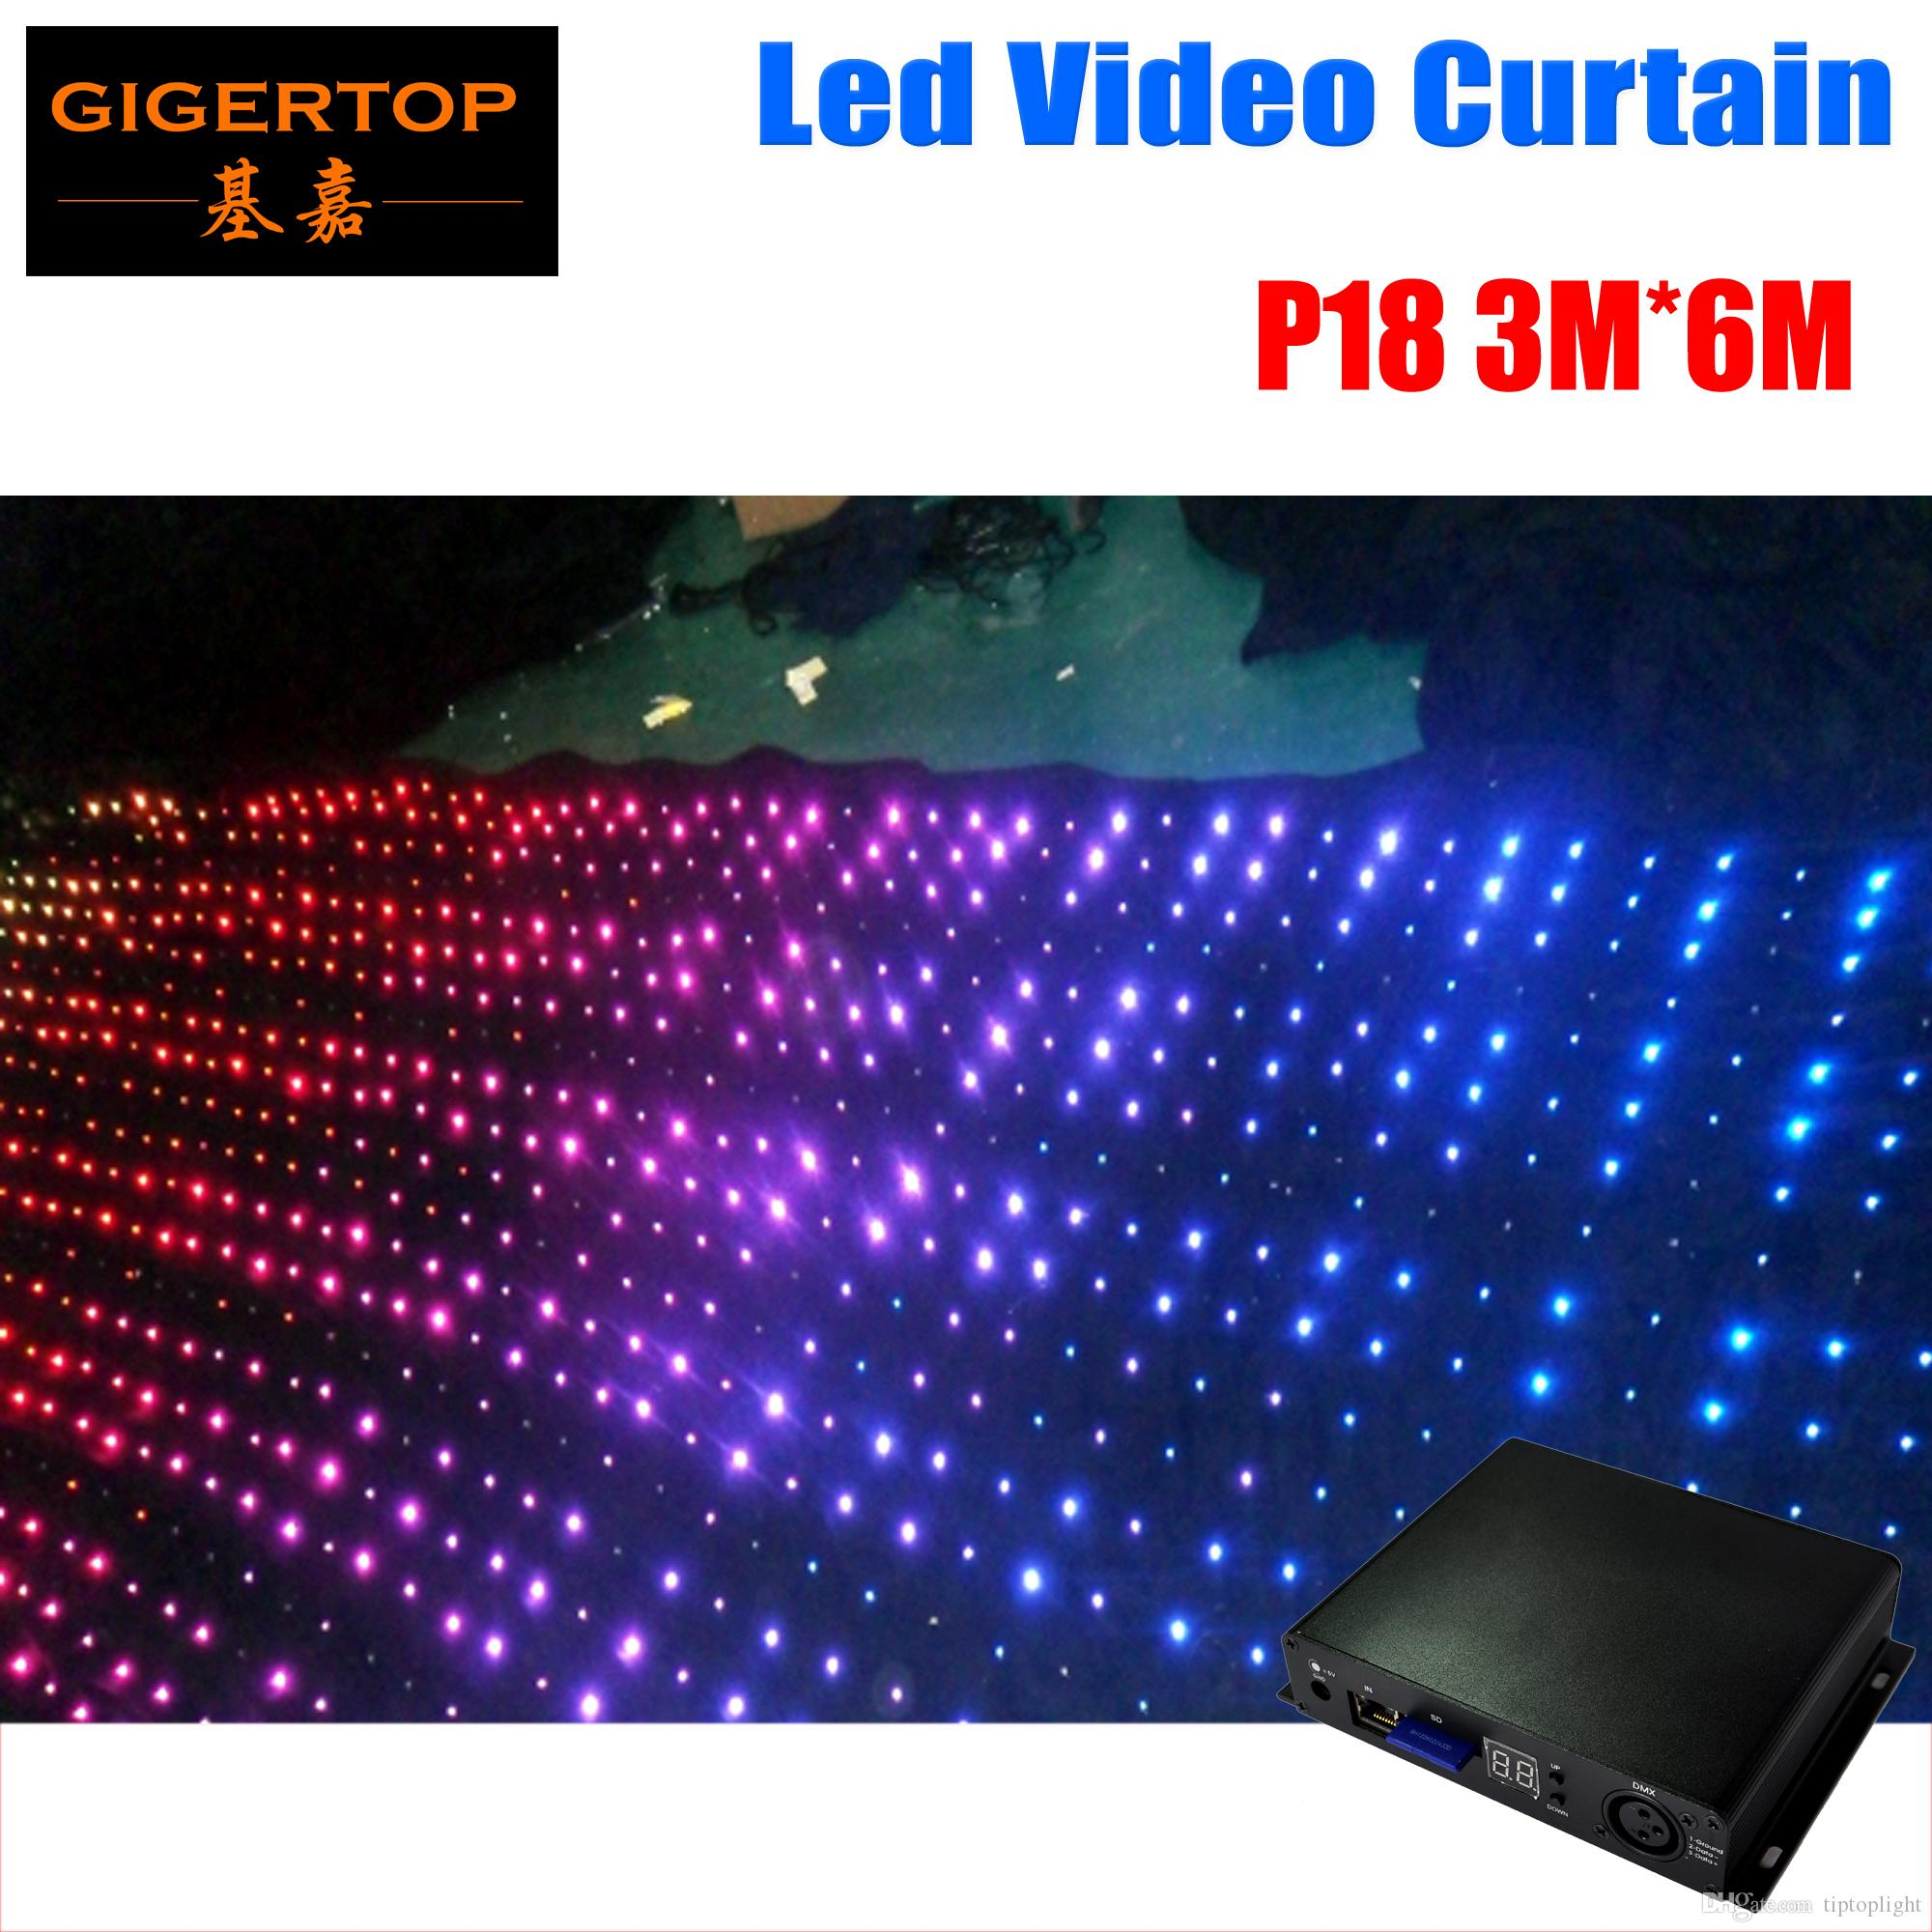 Fire Proof P18 3m*6m Led Video Curtain Mini Curtain Controller For Dj  Wedding Backdrops 90v 240v 4g Program Memory Card Easy Control Led Water  Effect Led ...